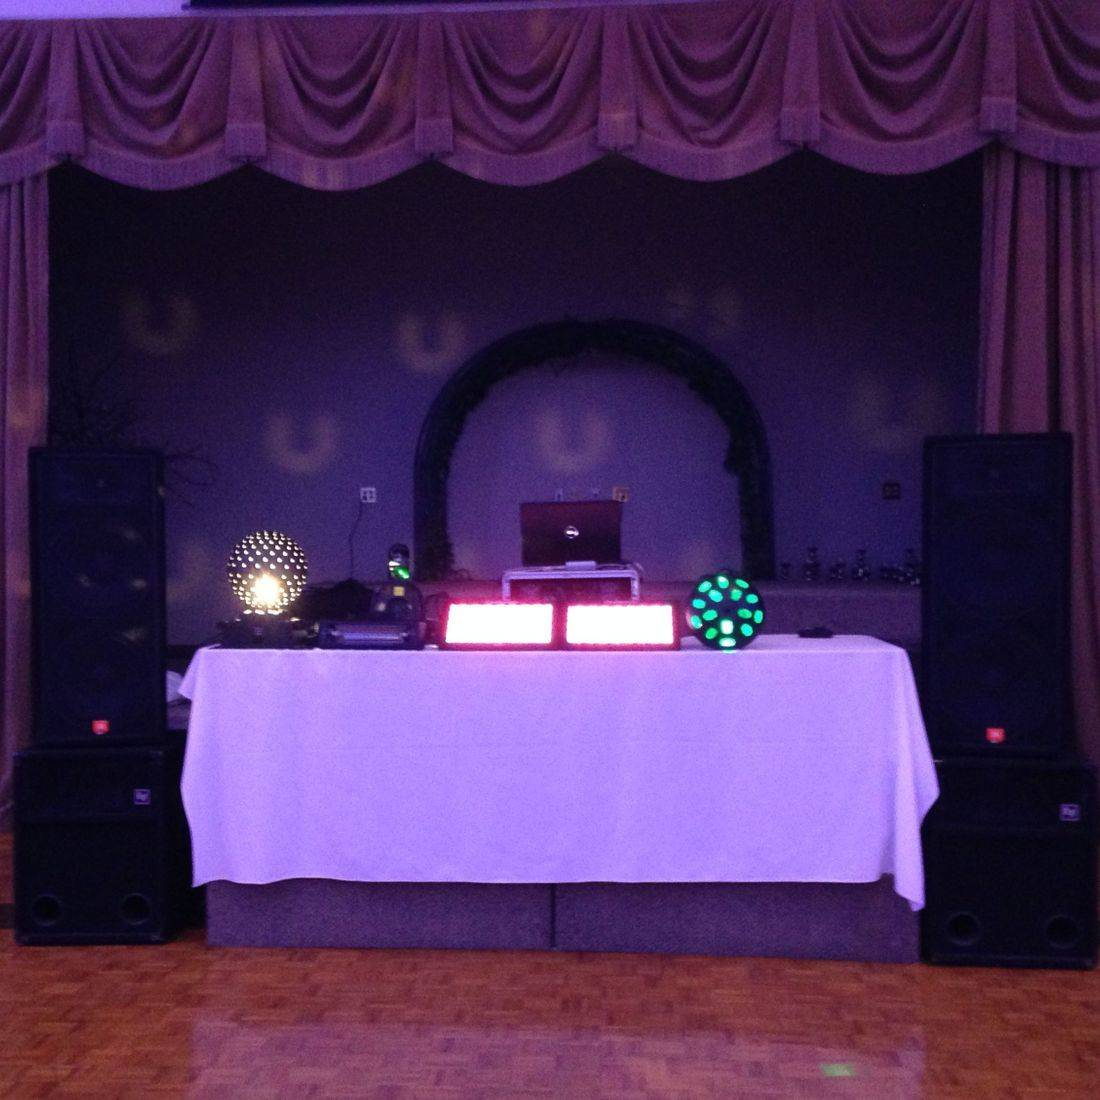 Mr. Productions DJ Service being the Prom DJ at Michelangelos Banquet Hall in Hamilton.